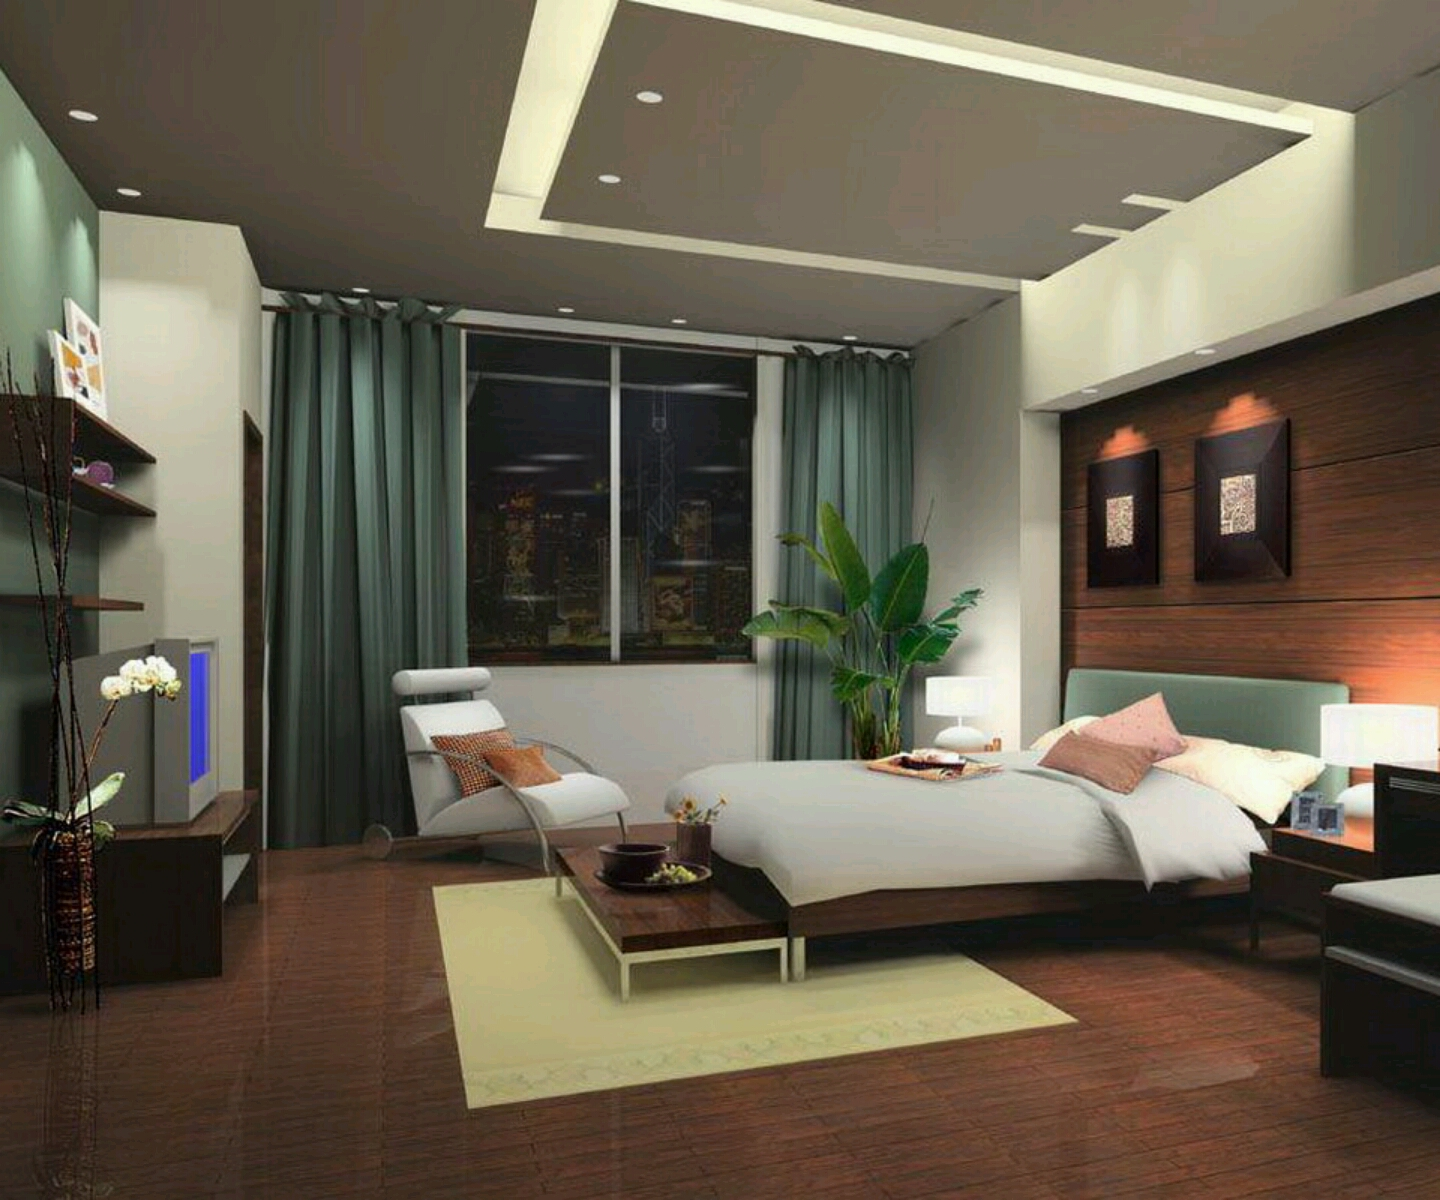 New home designs latest modern bedrooms designs best ideas for Bedroom ideas with pictures